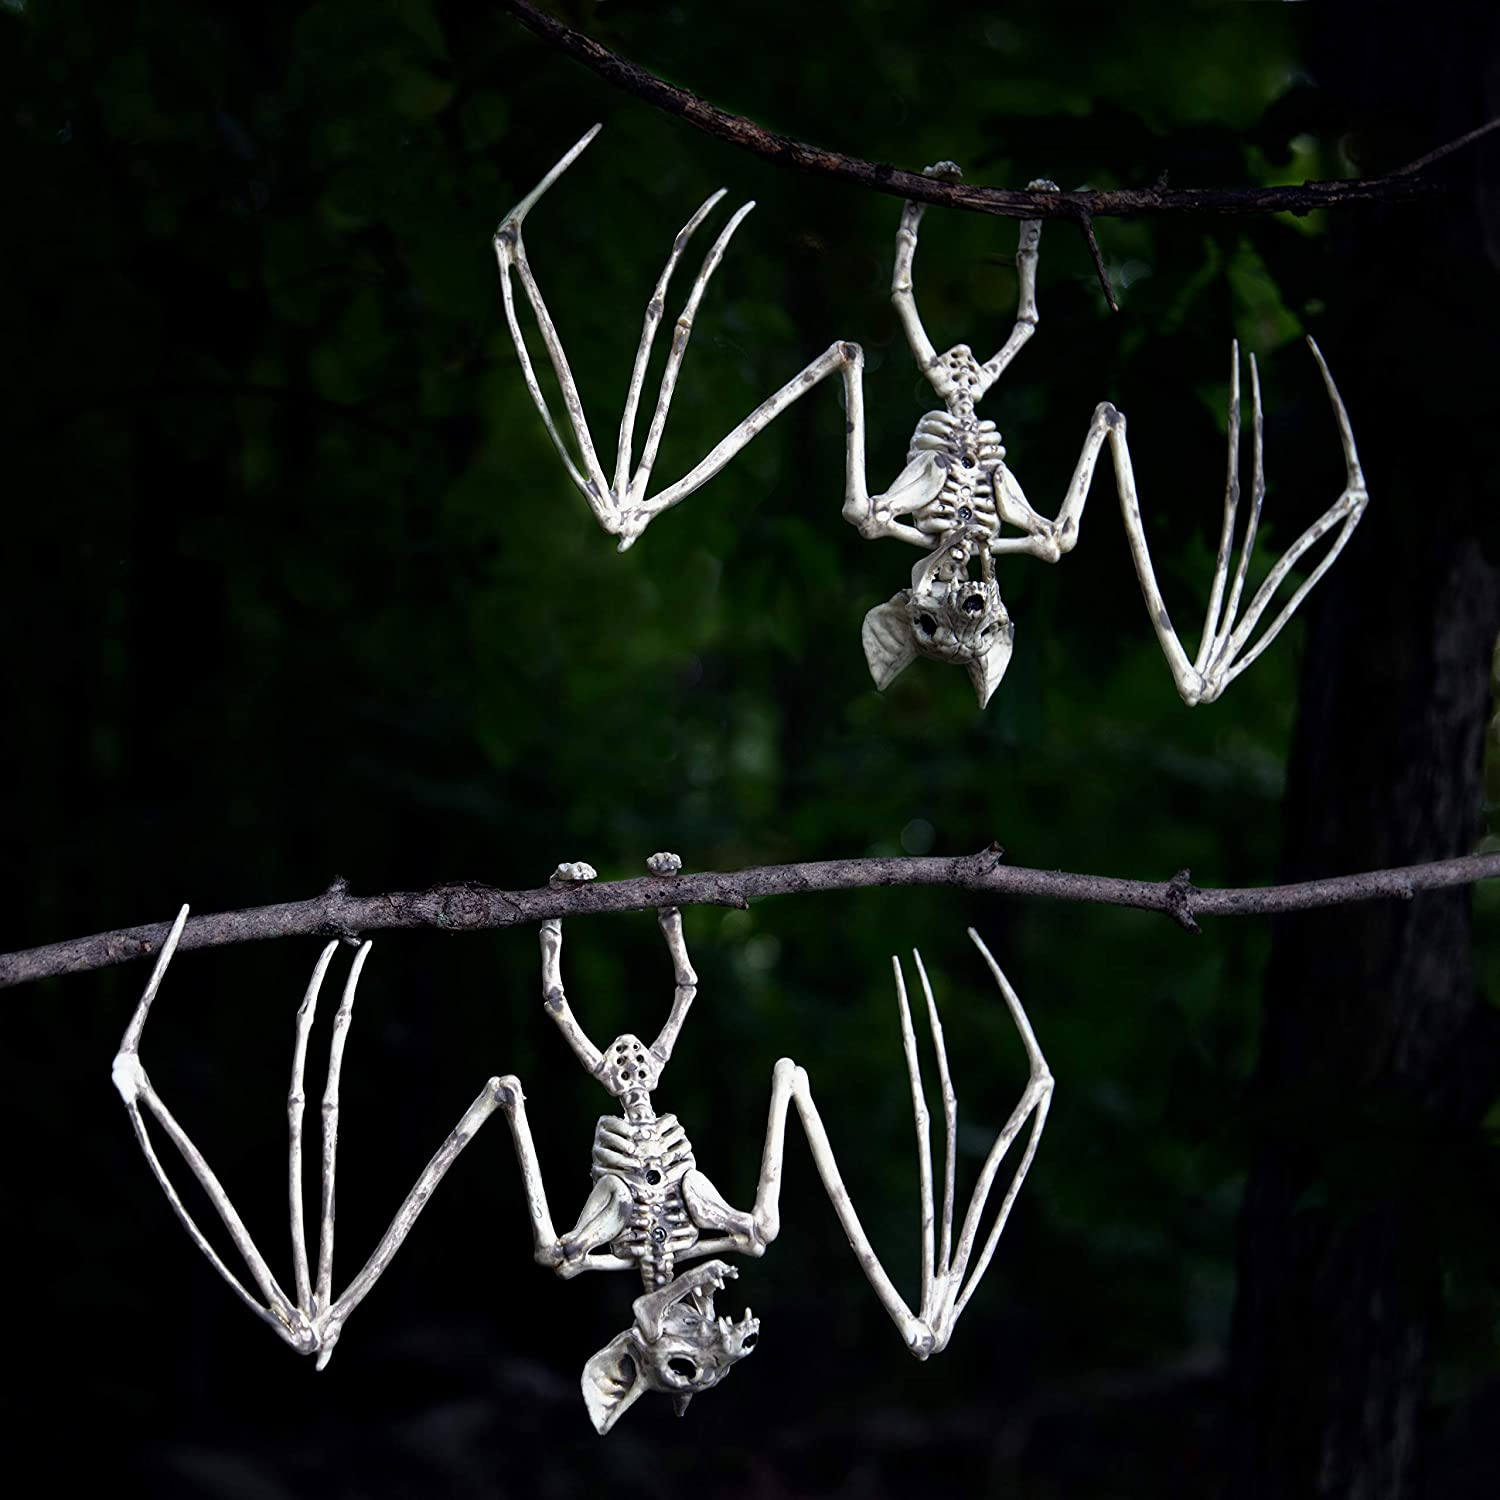 Table Lawn Skeleton Decoration Halloween Props and Decorations Bat Mouse Spider